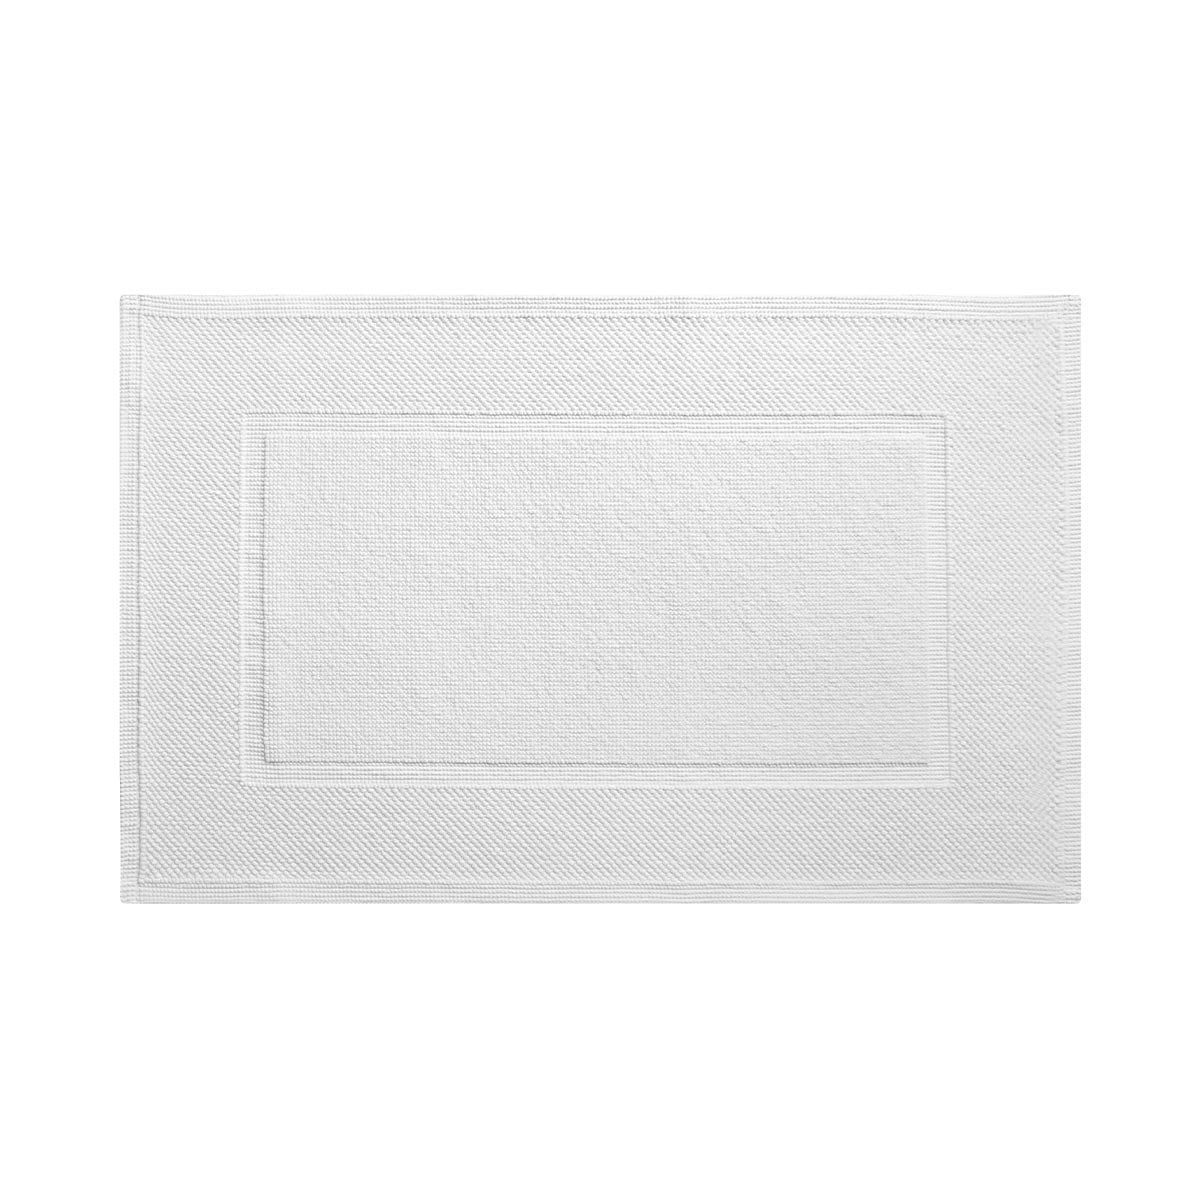 Eden Blanc Bath Mat by Yves Delorme | Fig Linens and Home - White bath mat, rug